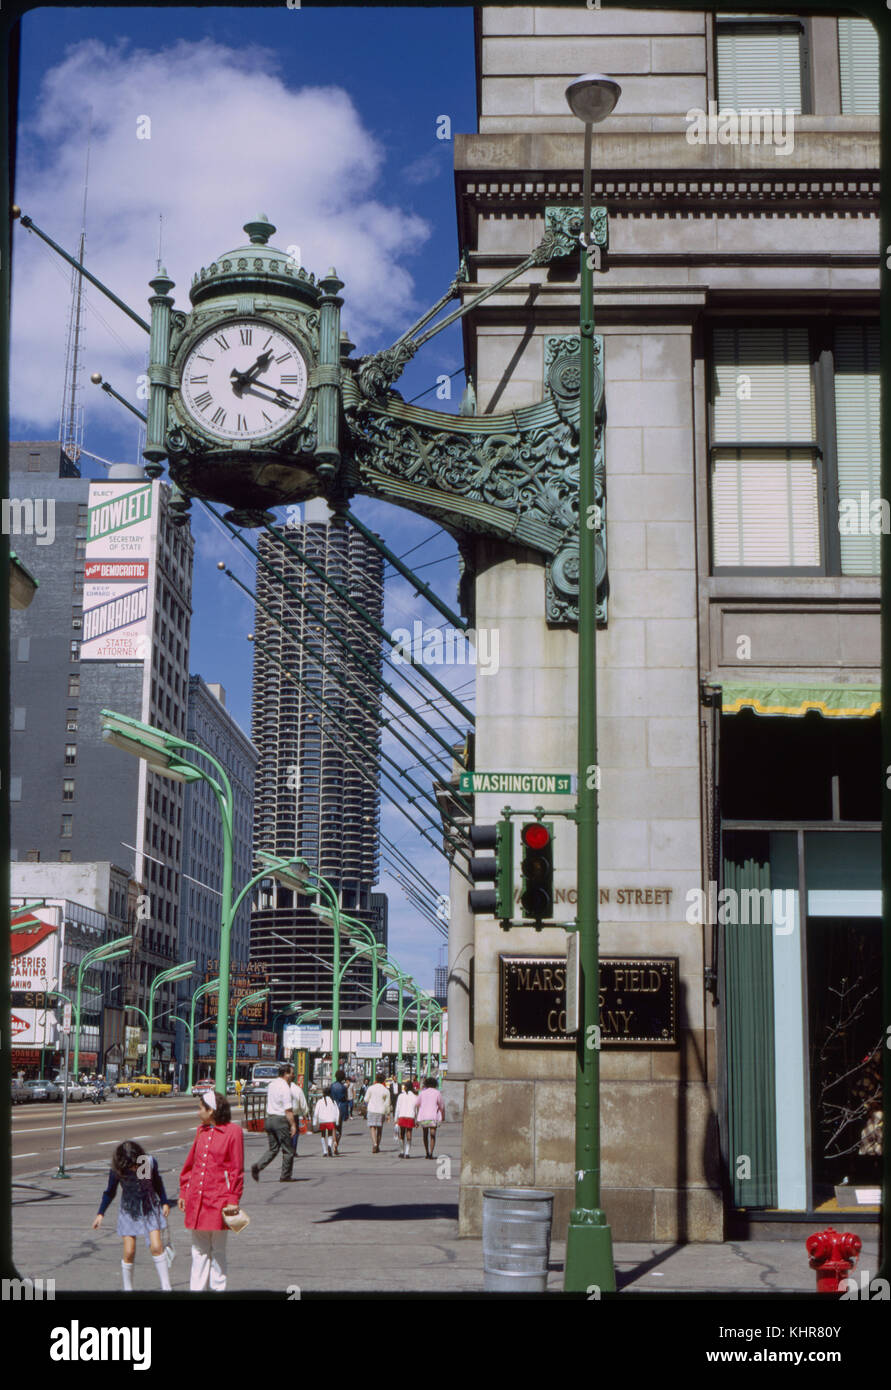 Clock, Marshall Field & Co. Department Store, Washington and State Streets, Chicago, Illinois, USA, 1972 - Stock Image